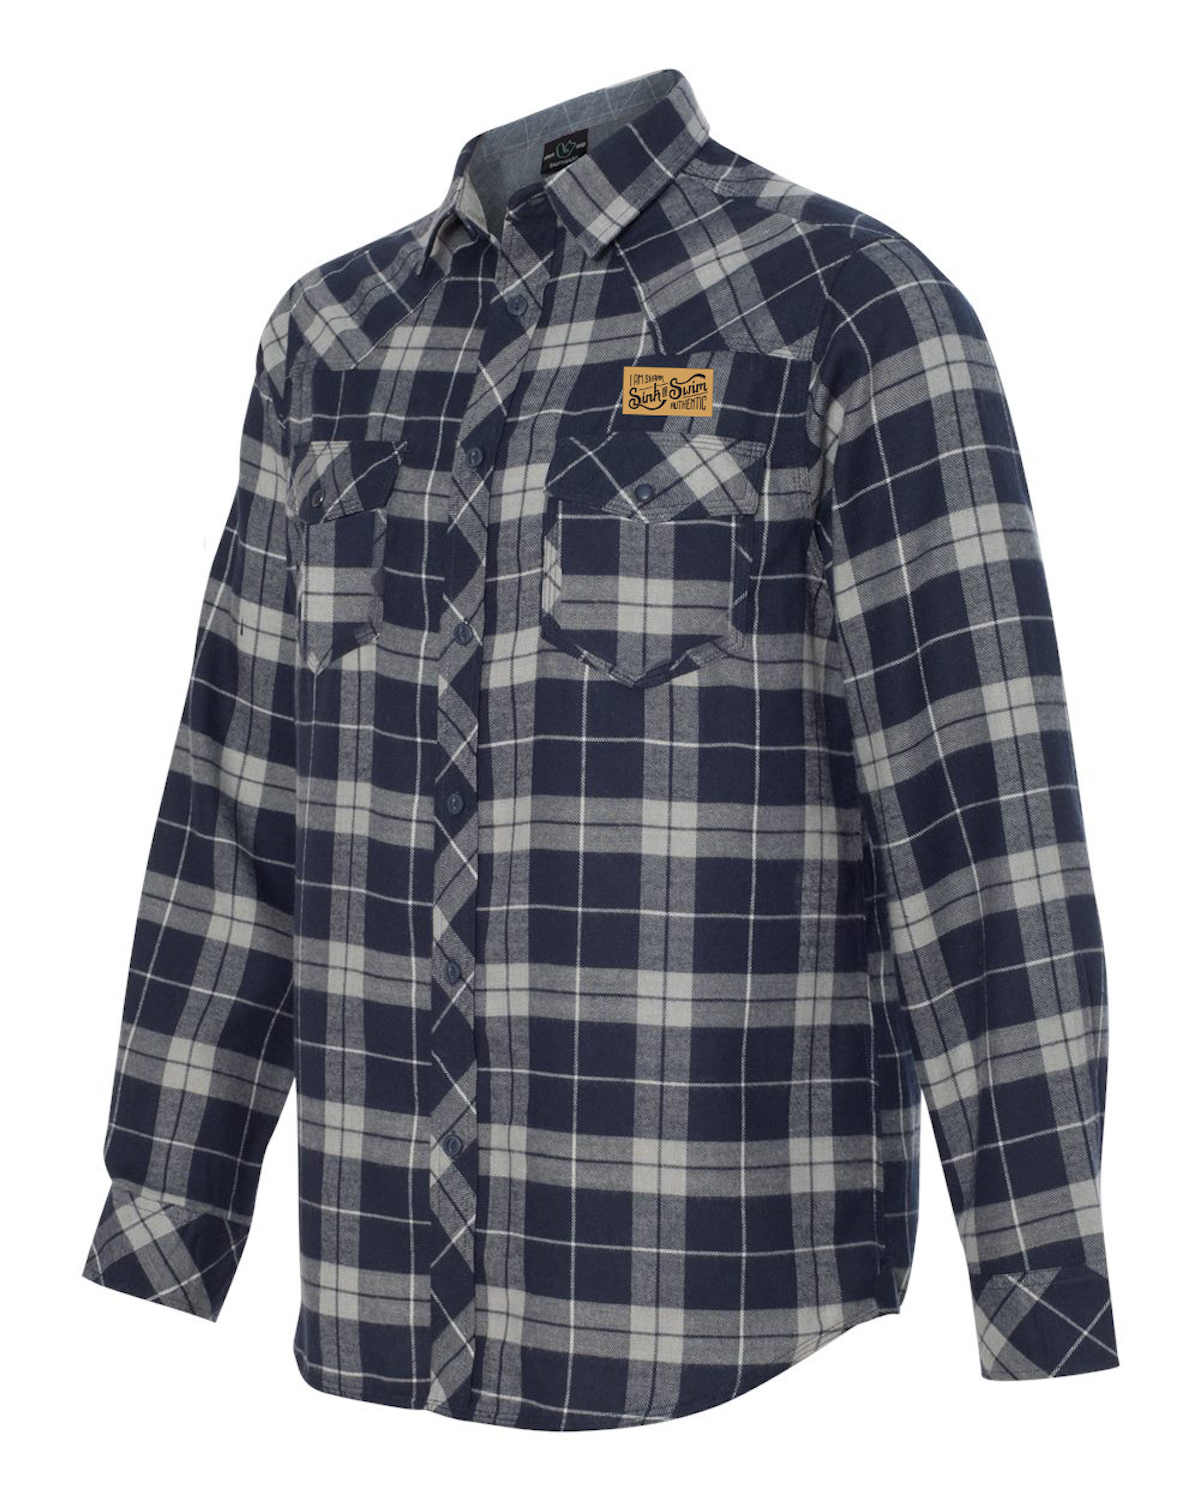 Sink or Swim Navy/Grey Flannel Shirt